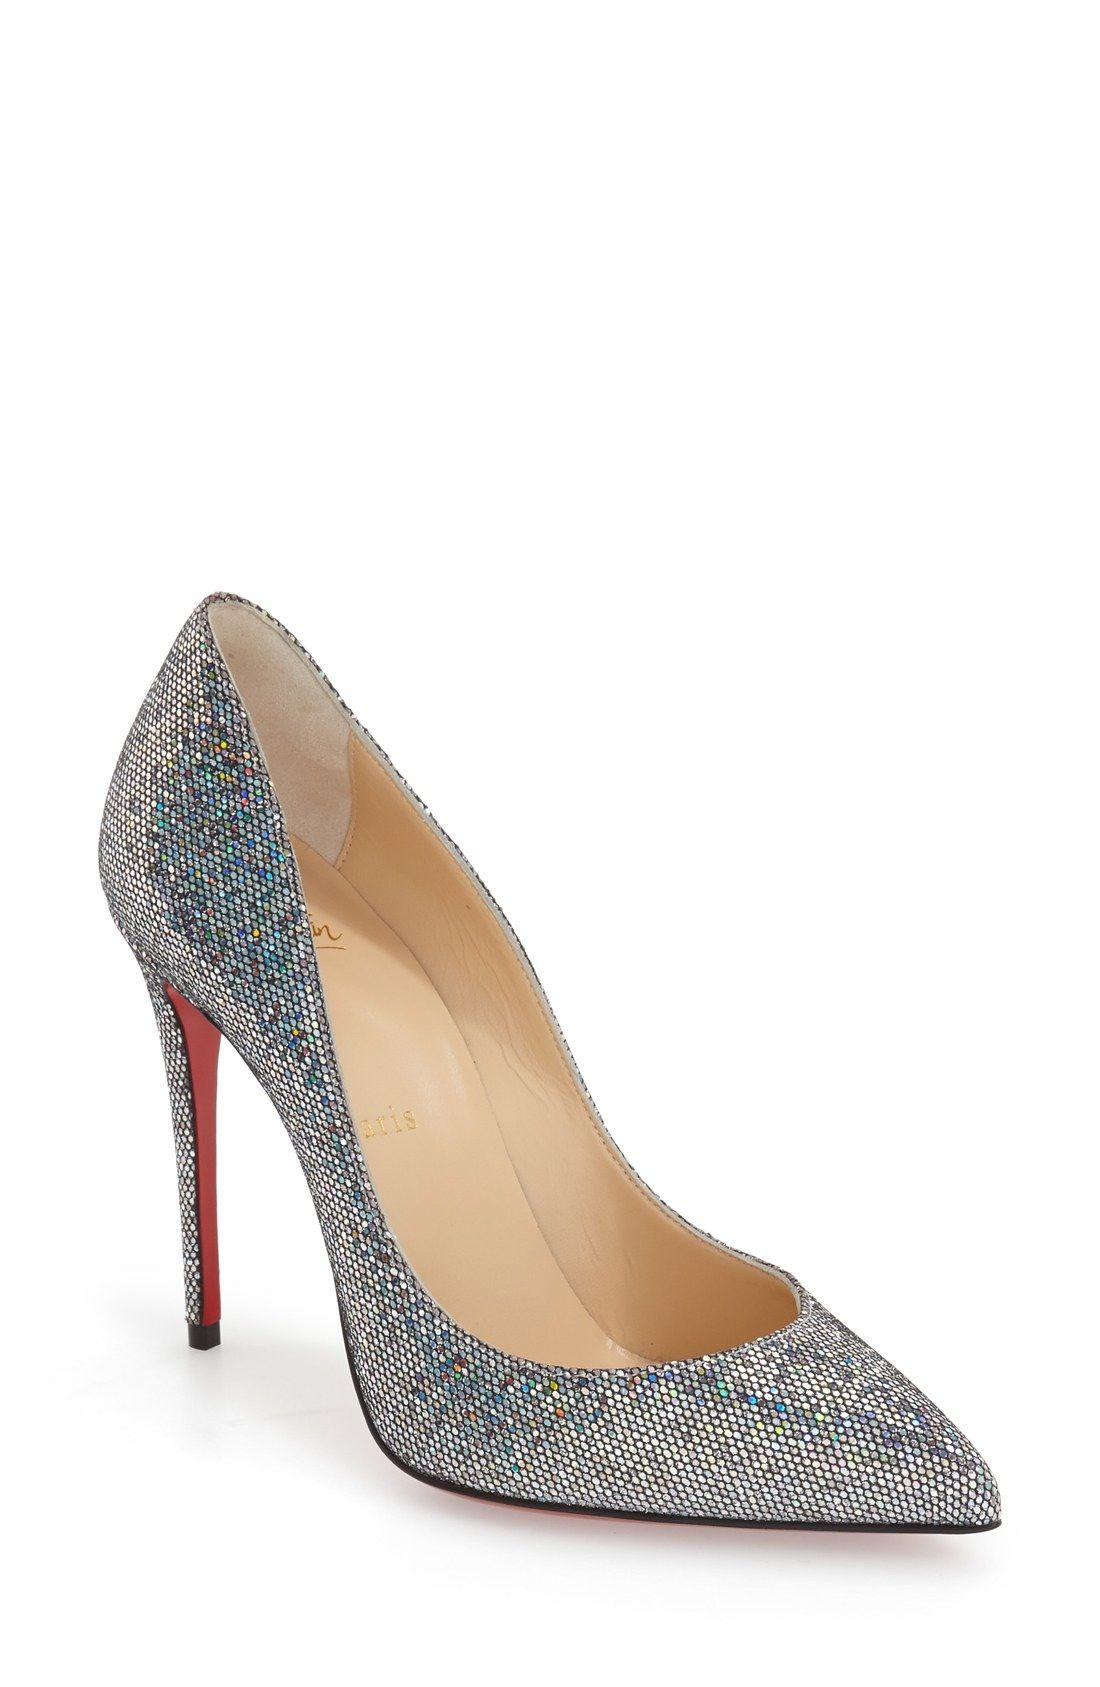 3c1f726a67c Christian Louboutin  Pigalle Follies  Pointy Toe Pump available at   Nordstrom. Glitter HeelsRed ...